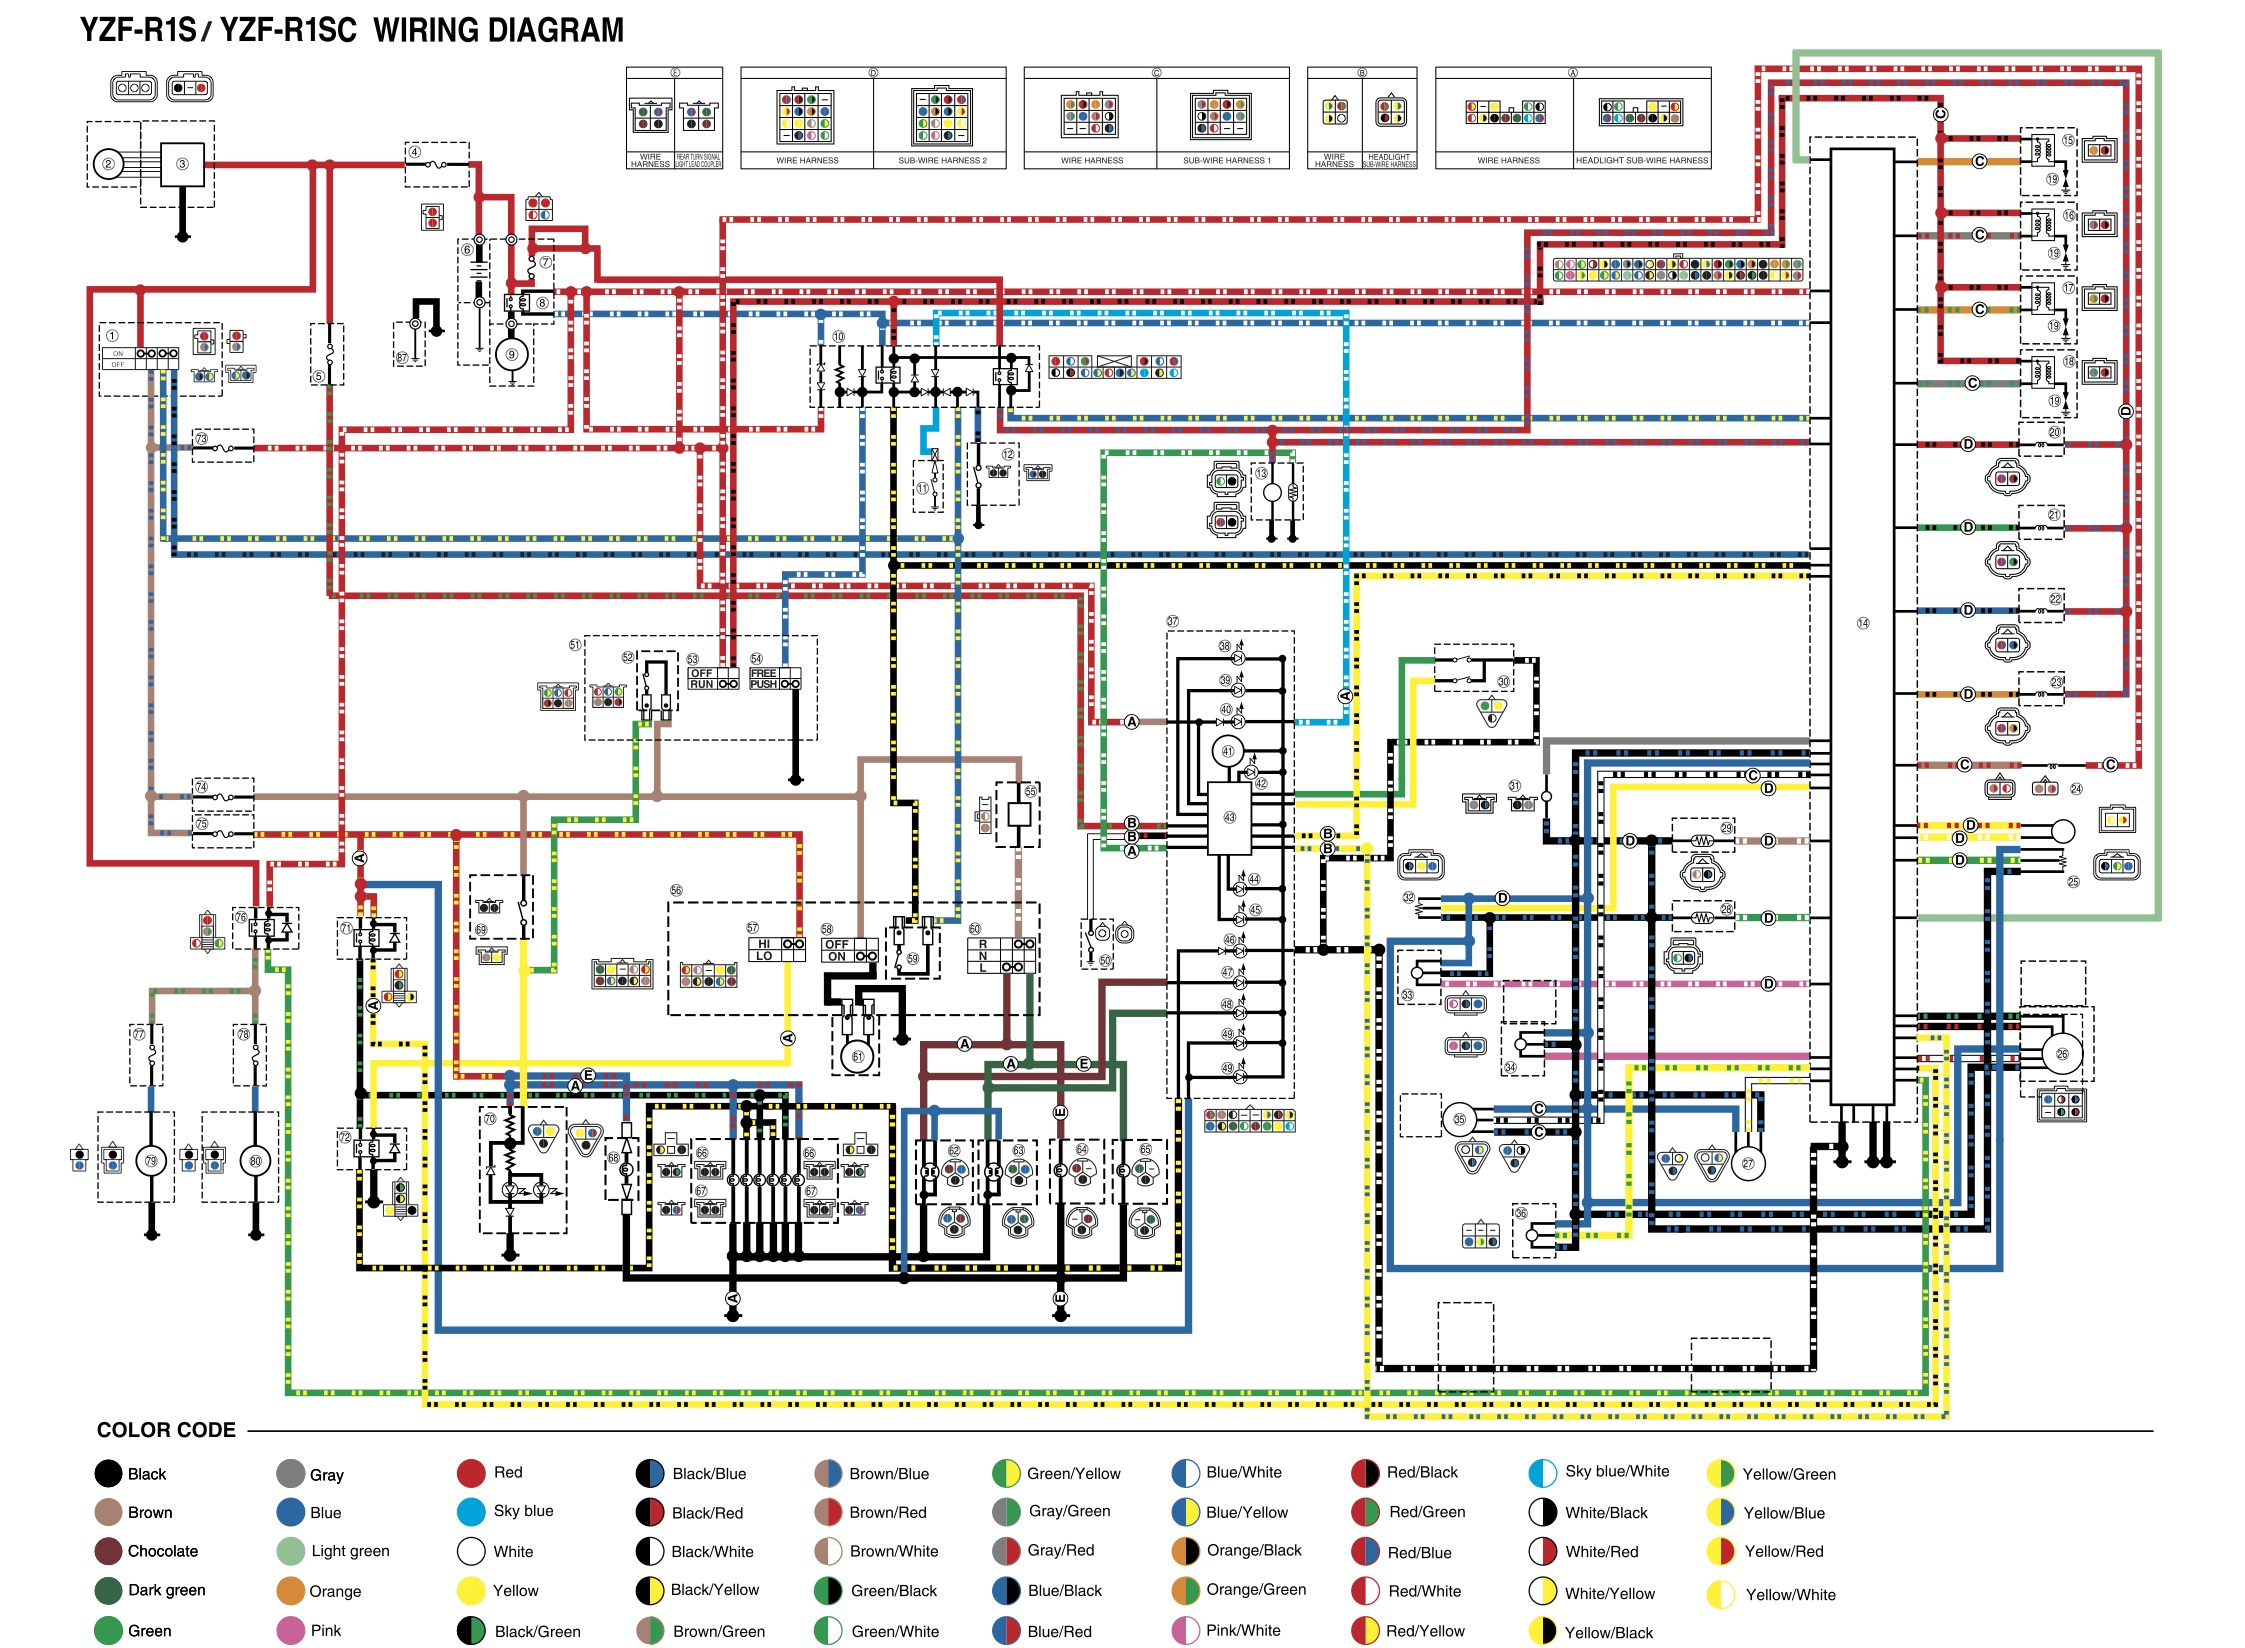 Fz6r Wiring Diagram Schemes 2005 Yamaha V Star 1100 Rhino 700 Basic Electrical Schematic Diagrams